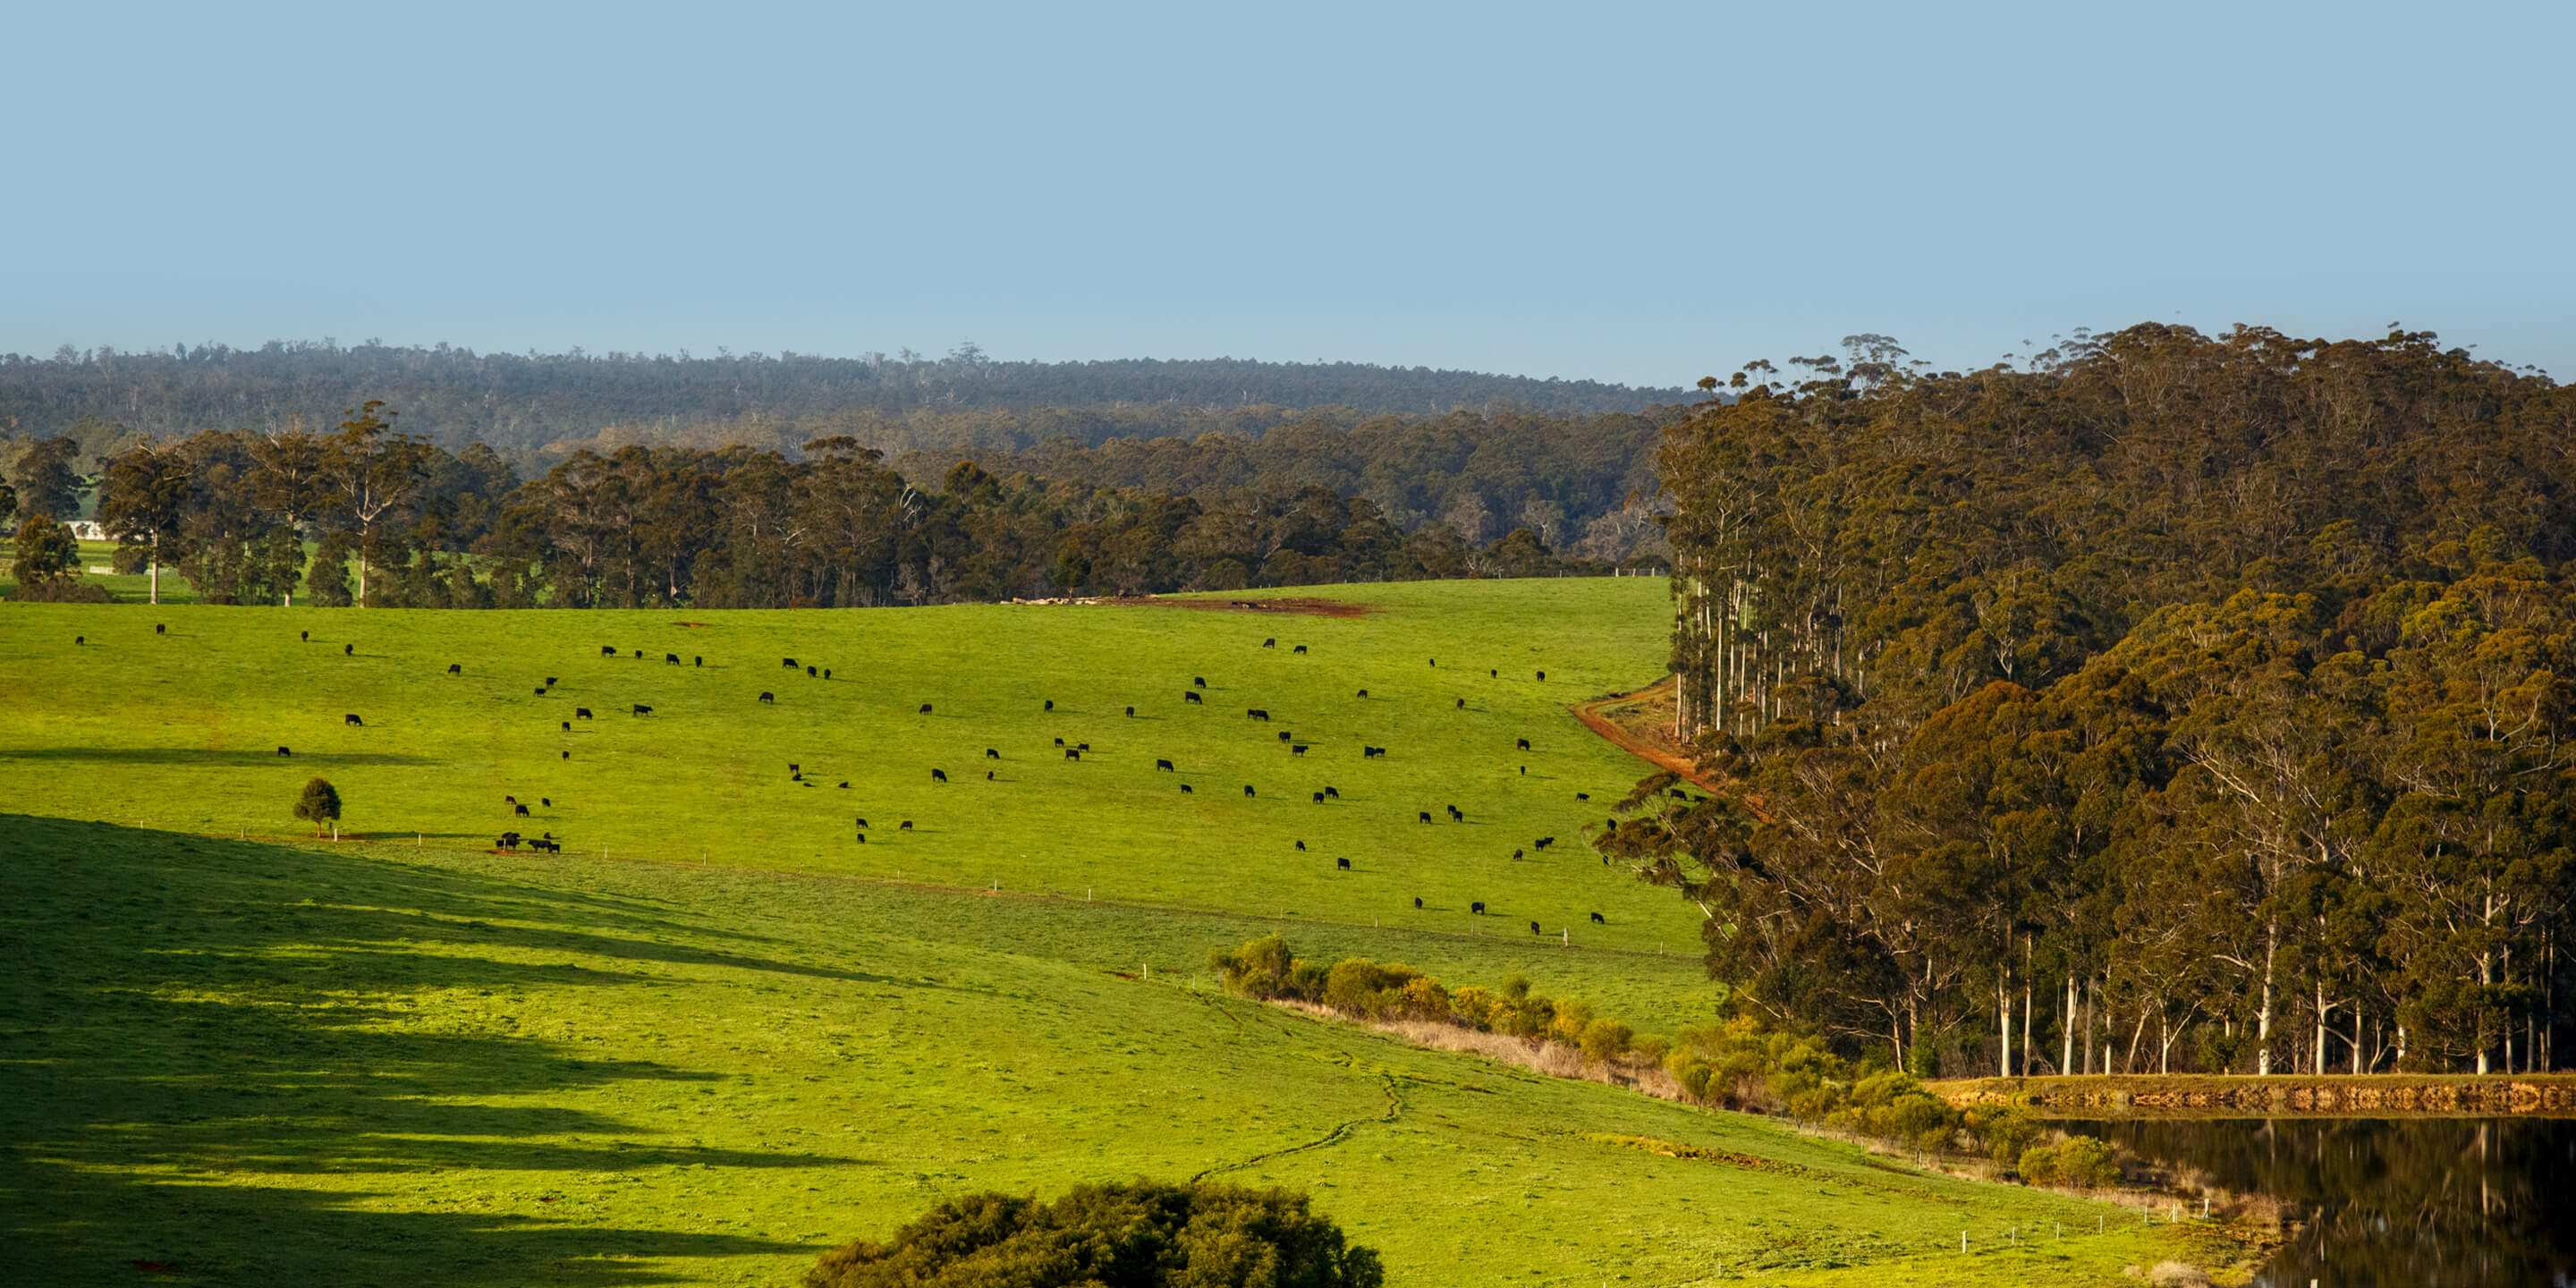 Wide angle view of the Diamond Tree property with cattle grazing on green grass surrounded by forest